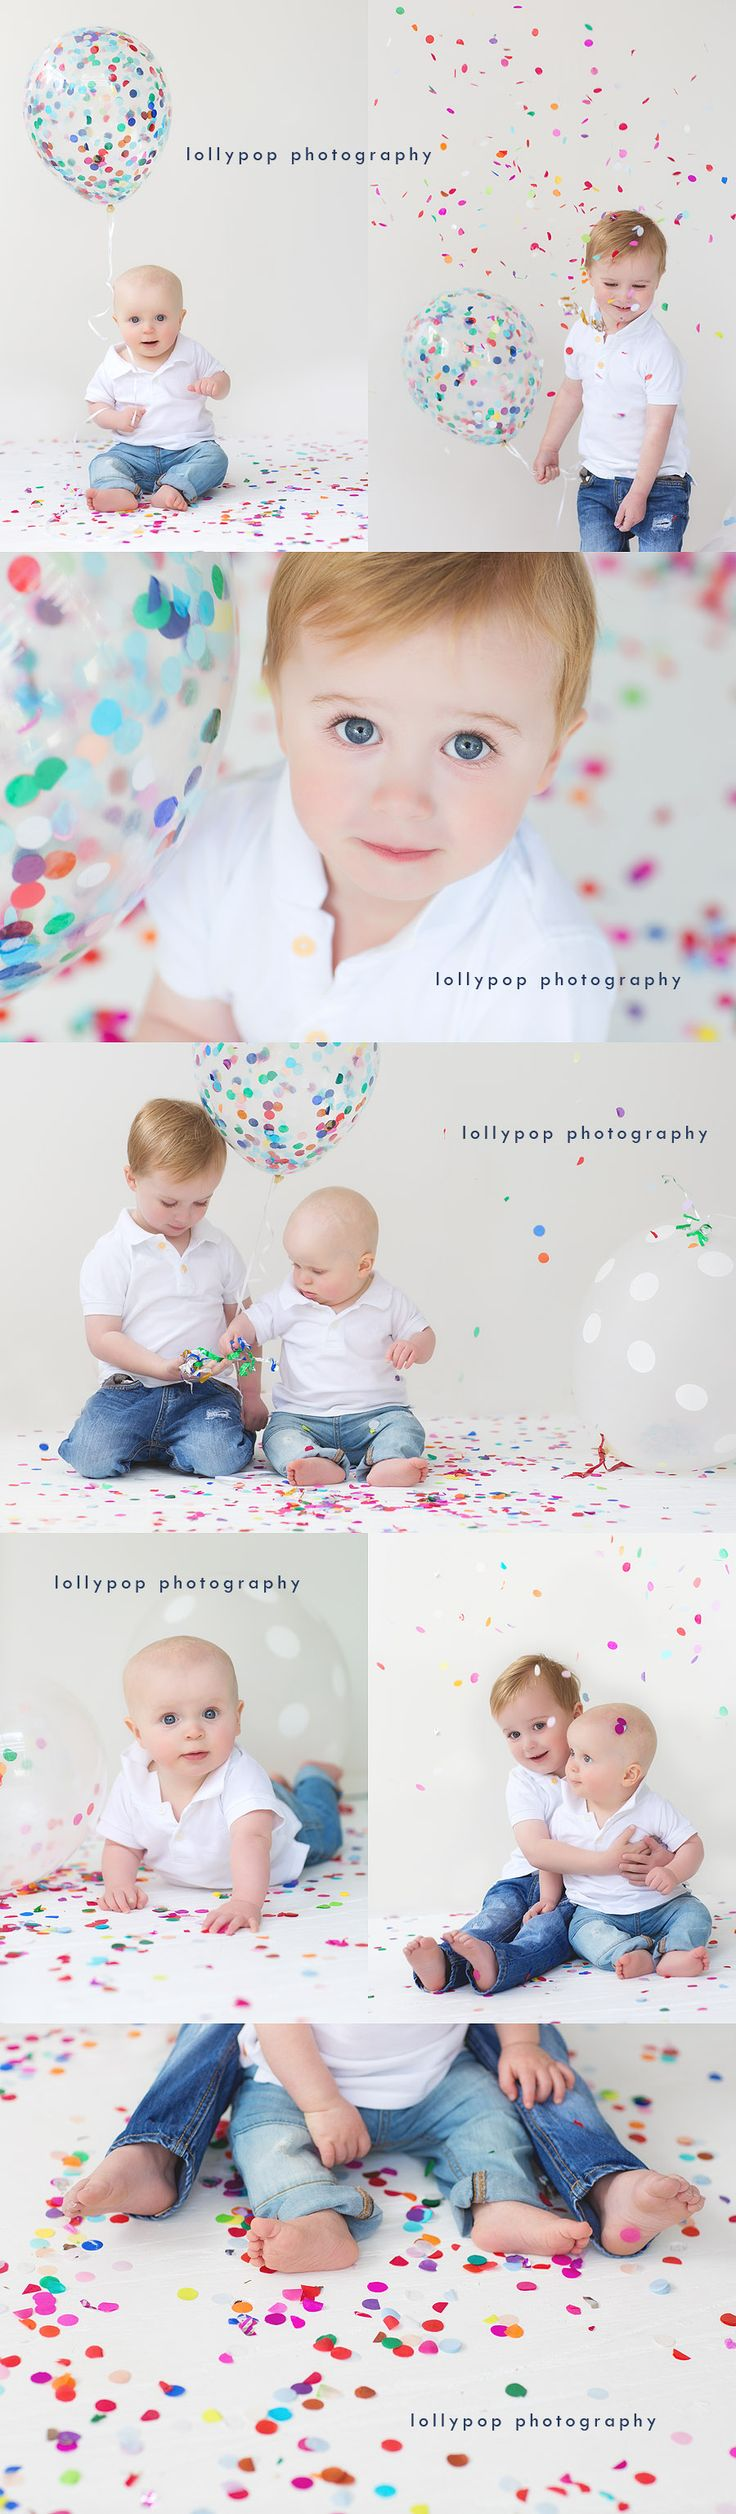 confetti mini sessions - Google Search